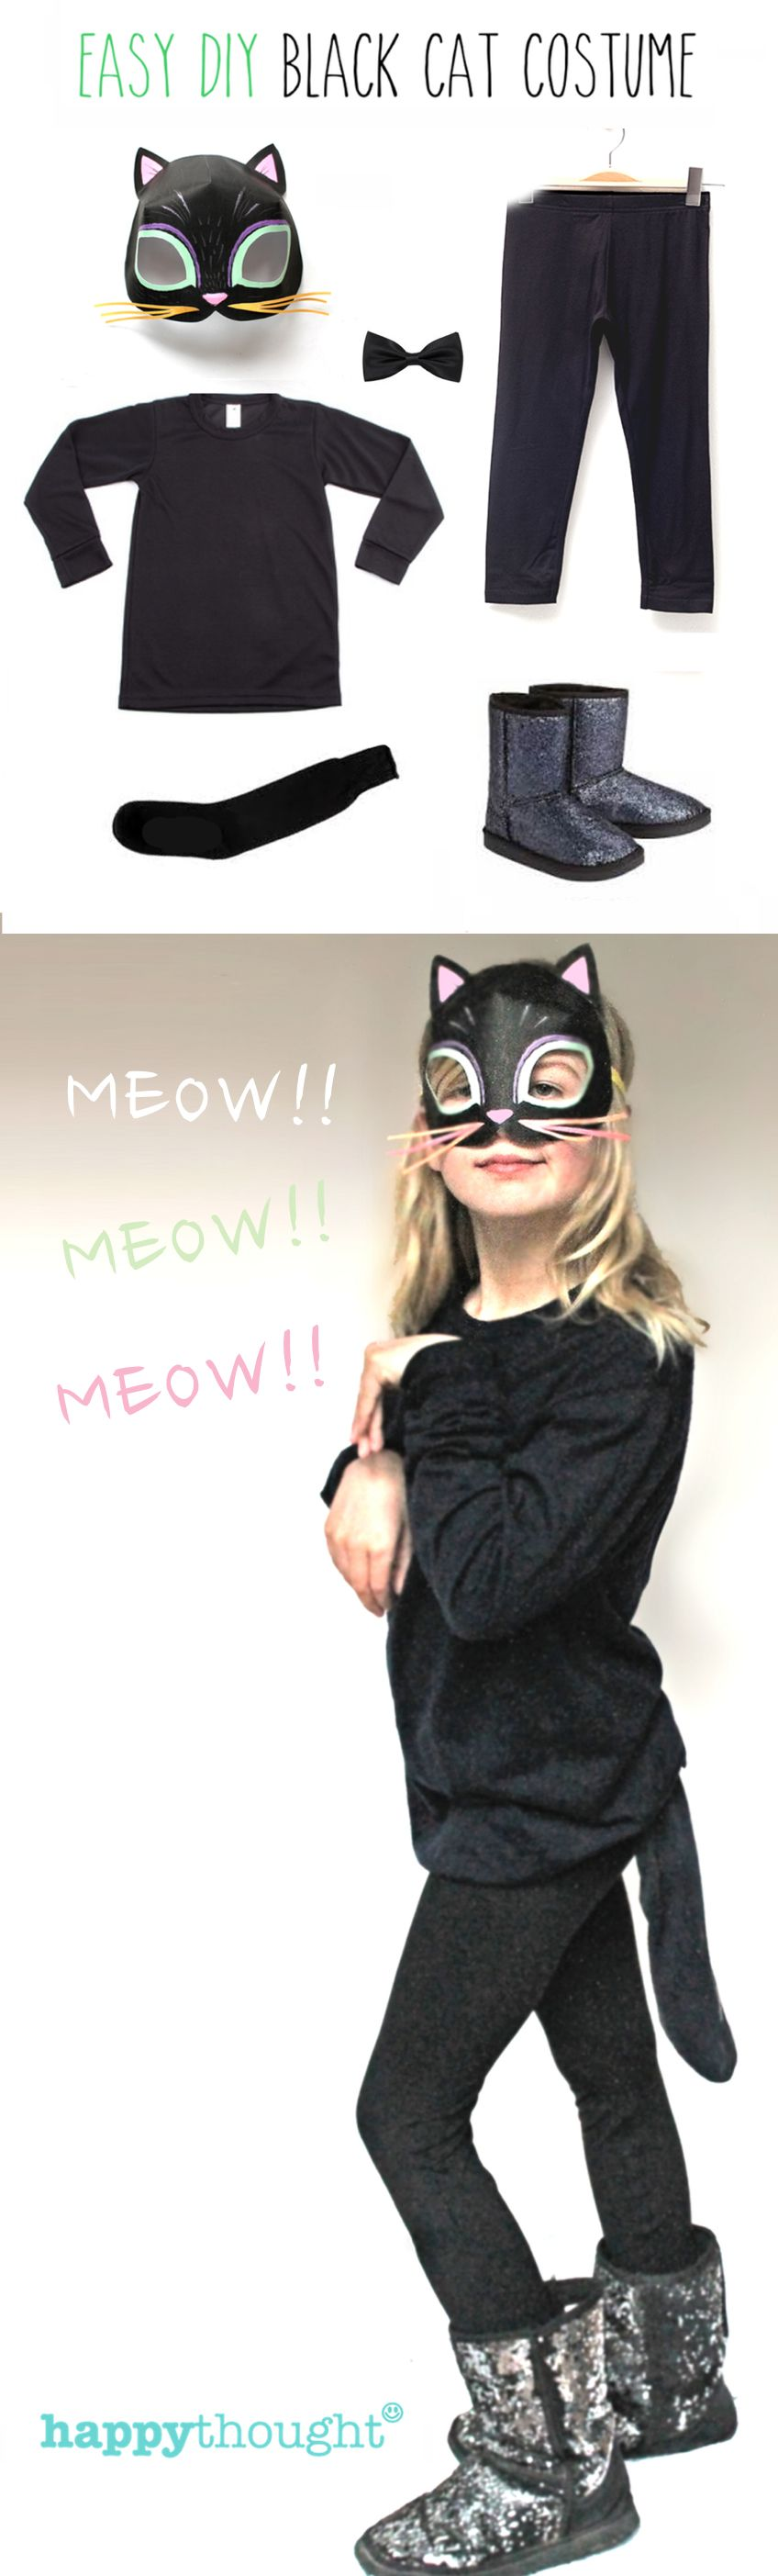 Make your own paper cat mask - instant download - and easy DIY kids cat costume ideas by happythought.co.uk  sc 1 st  Pinterest & Simple DIY ideas. Easy fun dress up Animal costume ideas ...